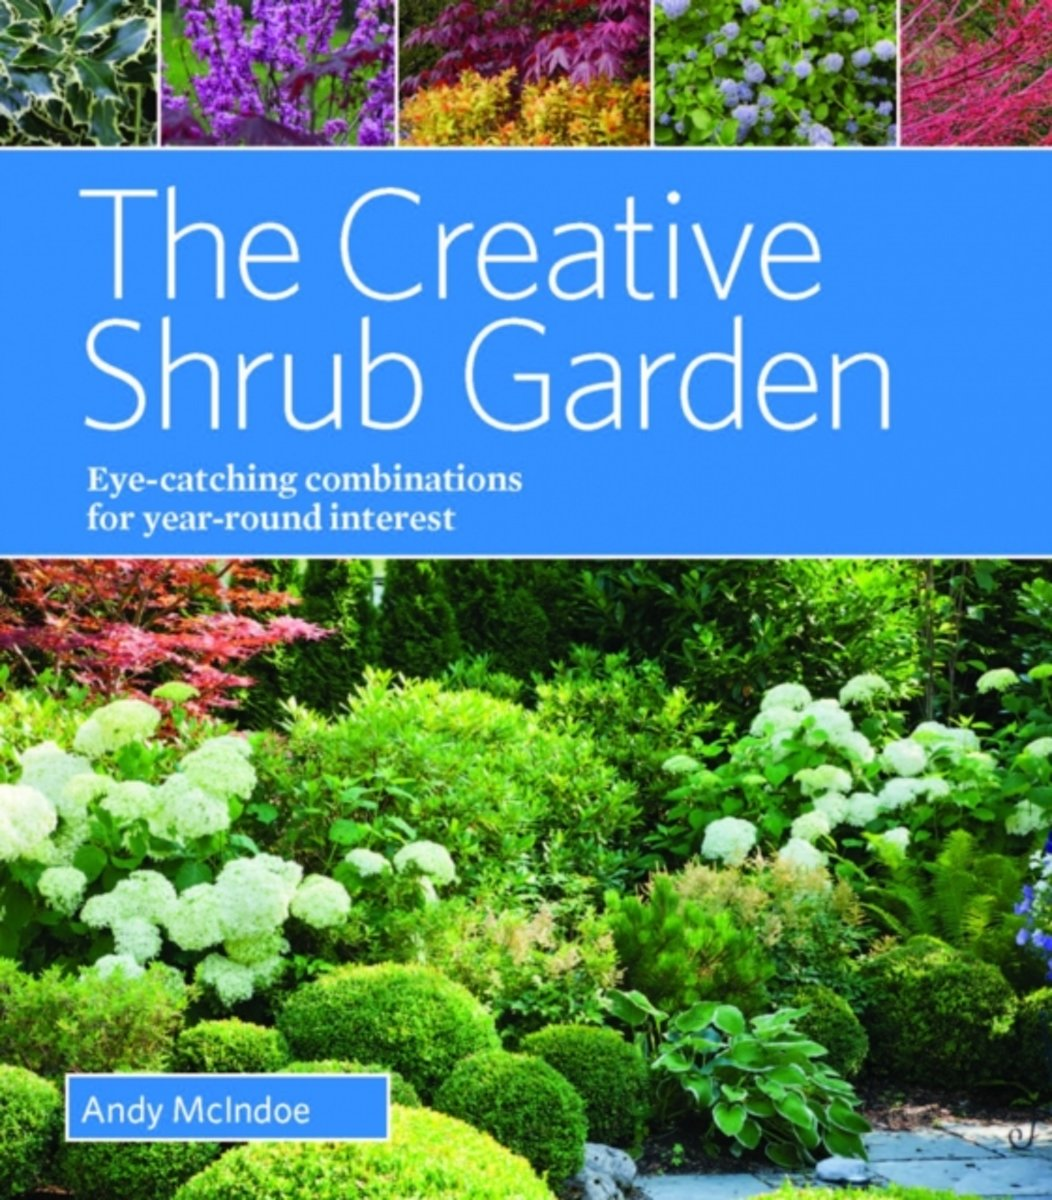 Creative Schrub Garden Eye-Catching Combinations for Year Round Interest